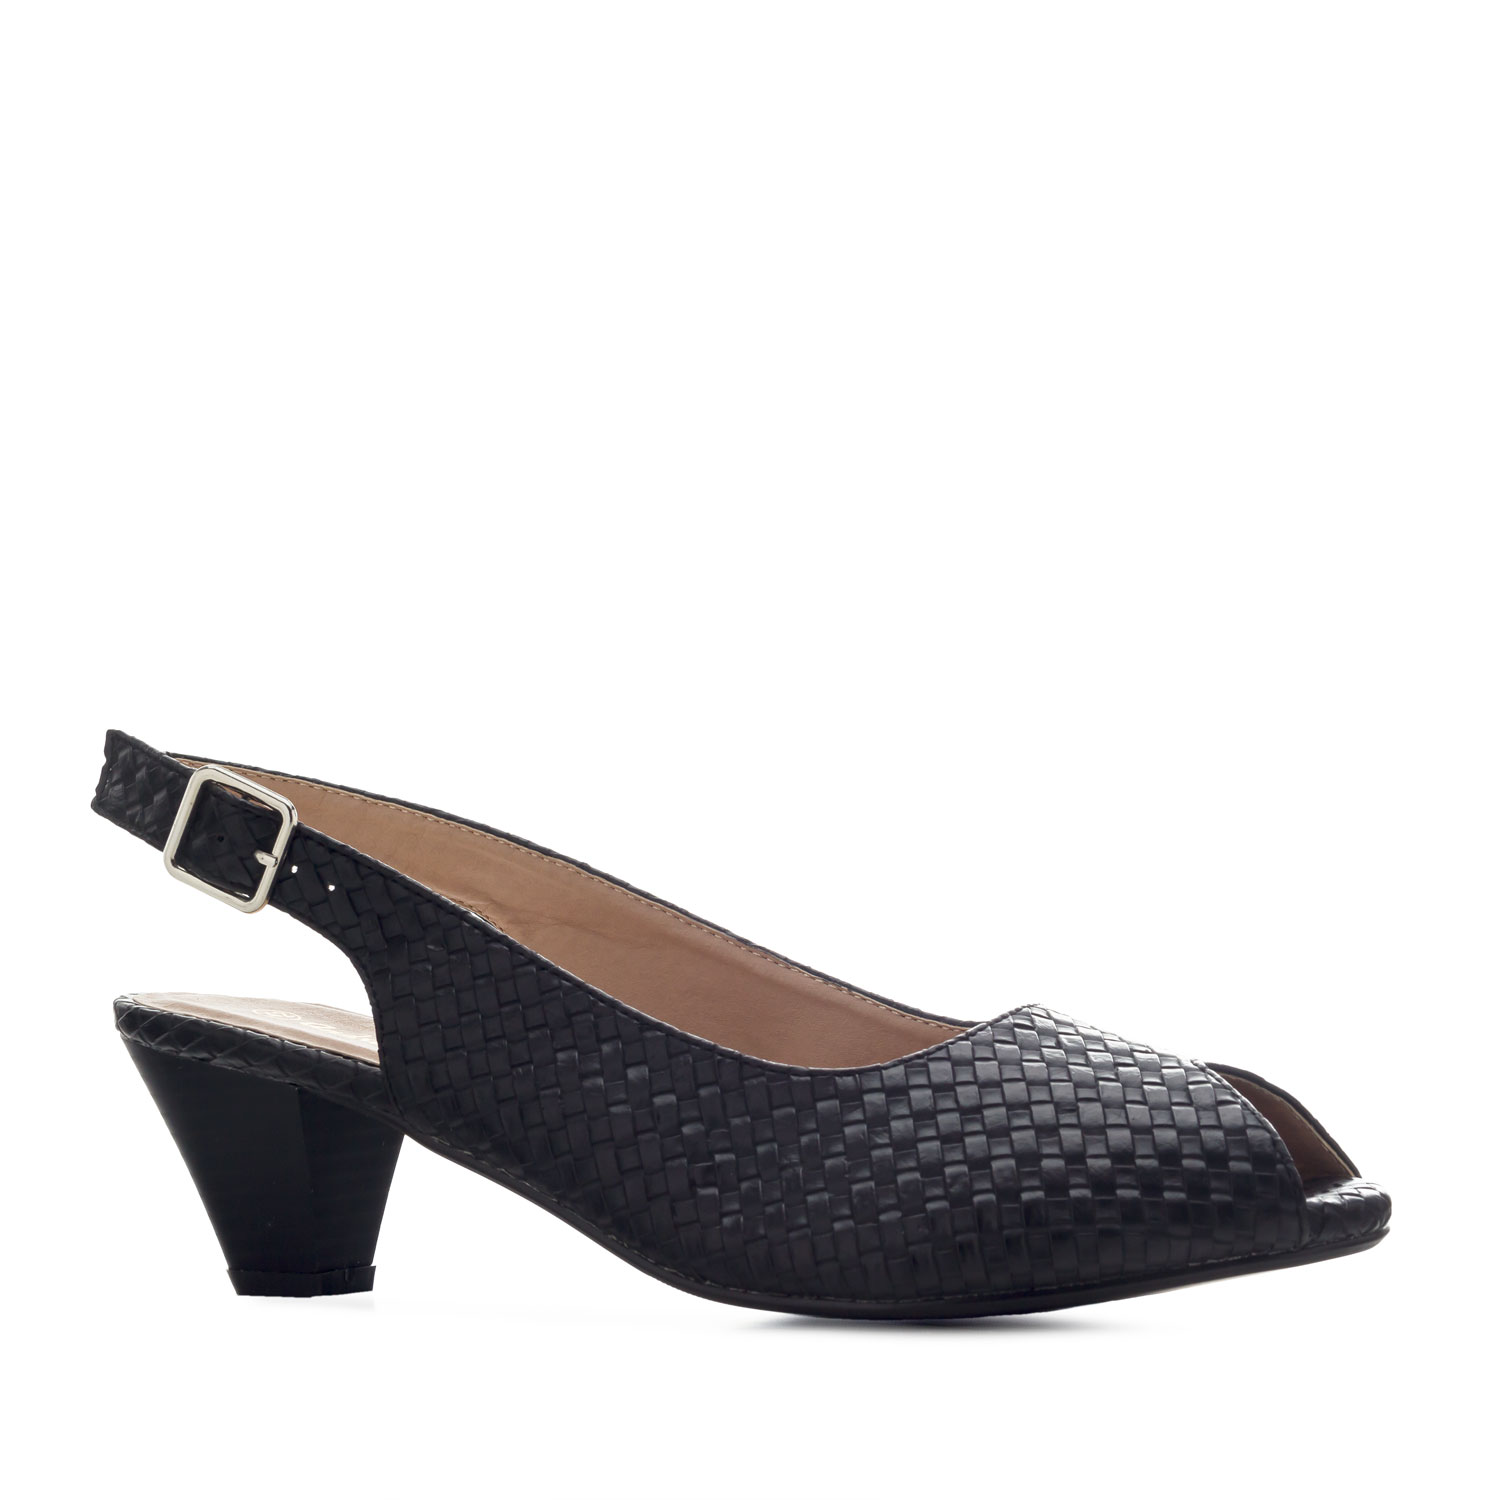 Peep Toe Slingbacks in engraved Black